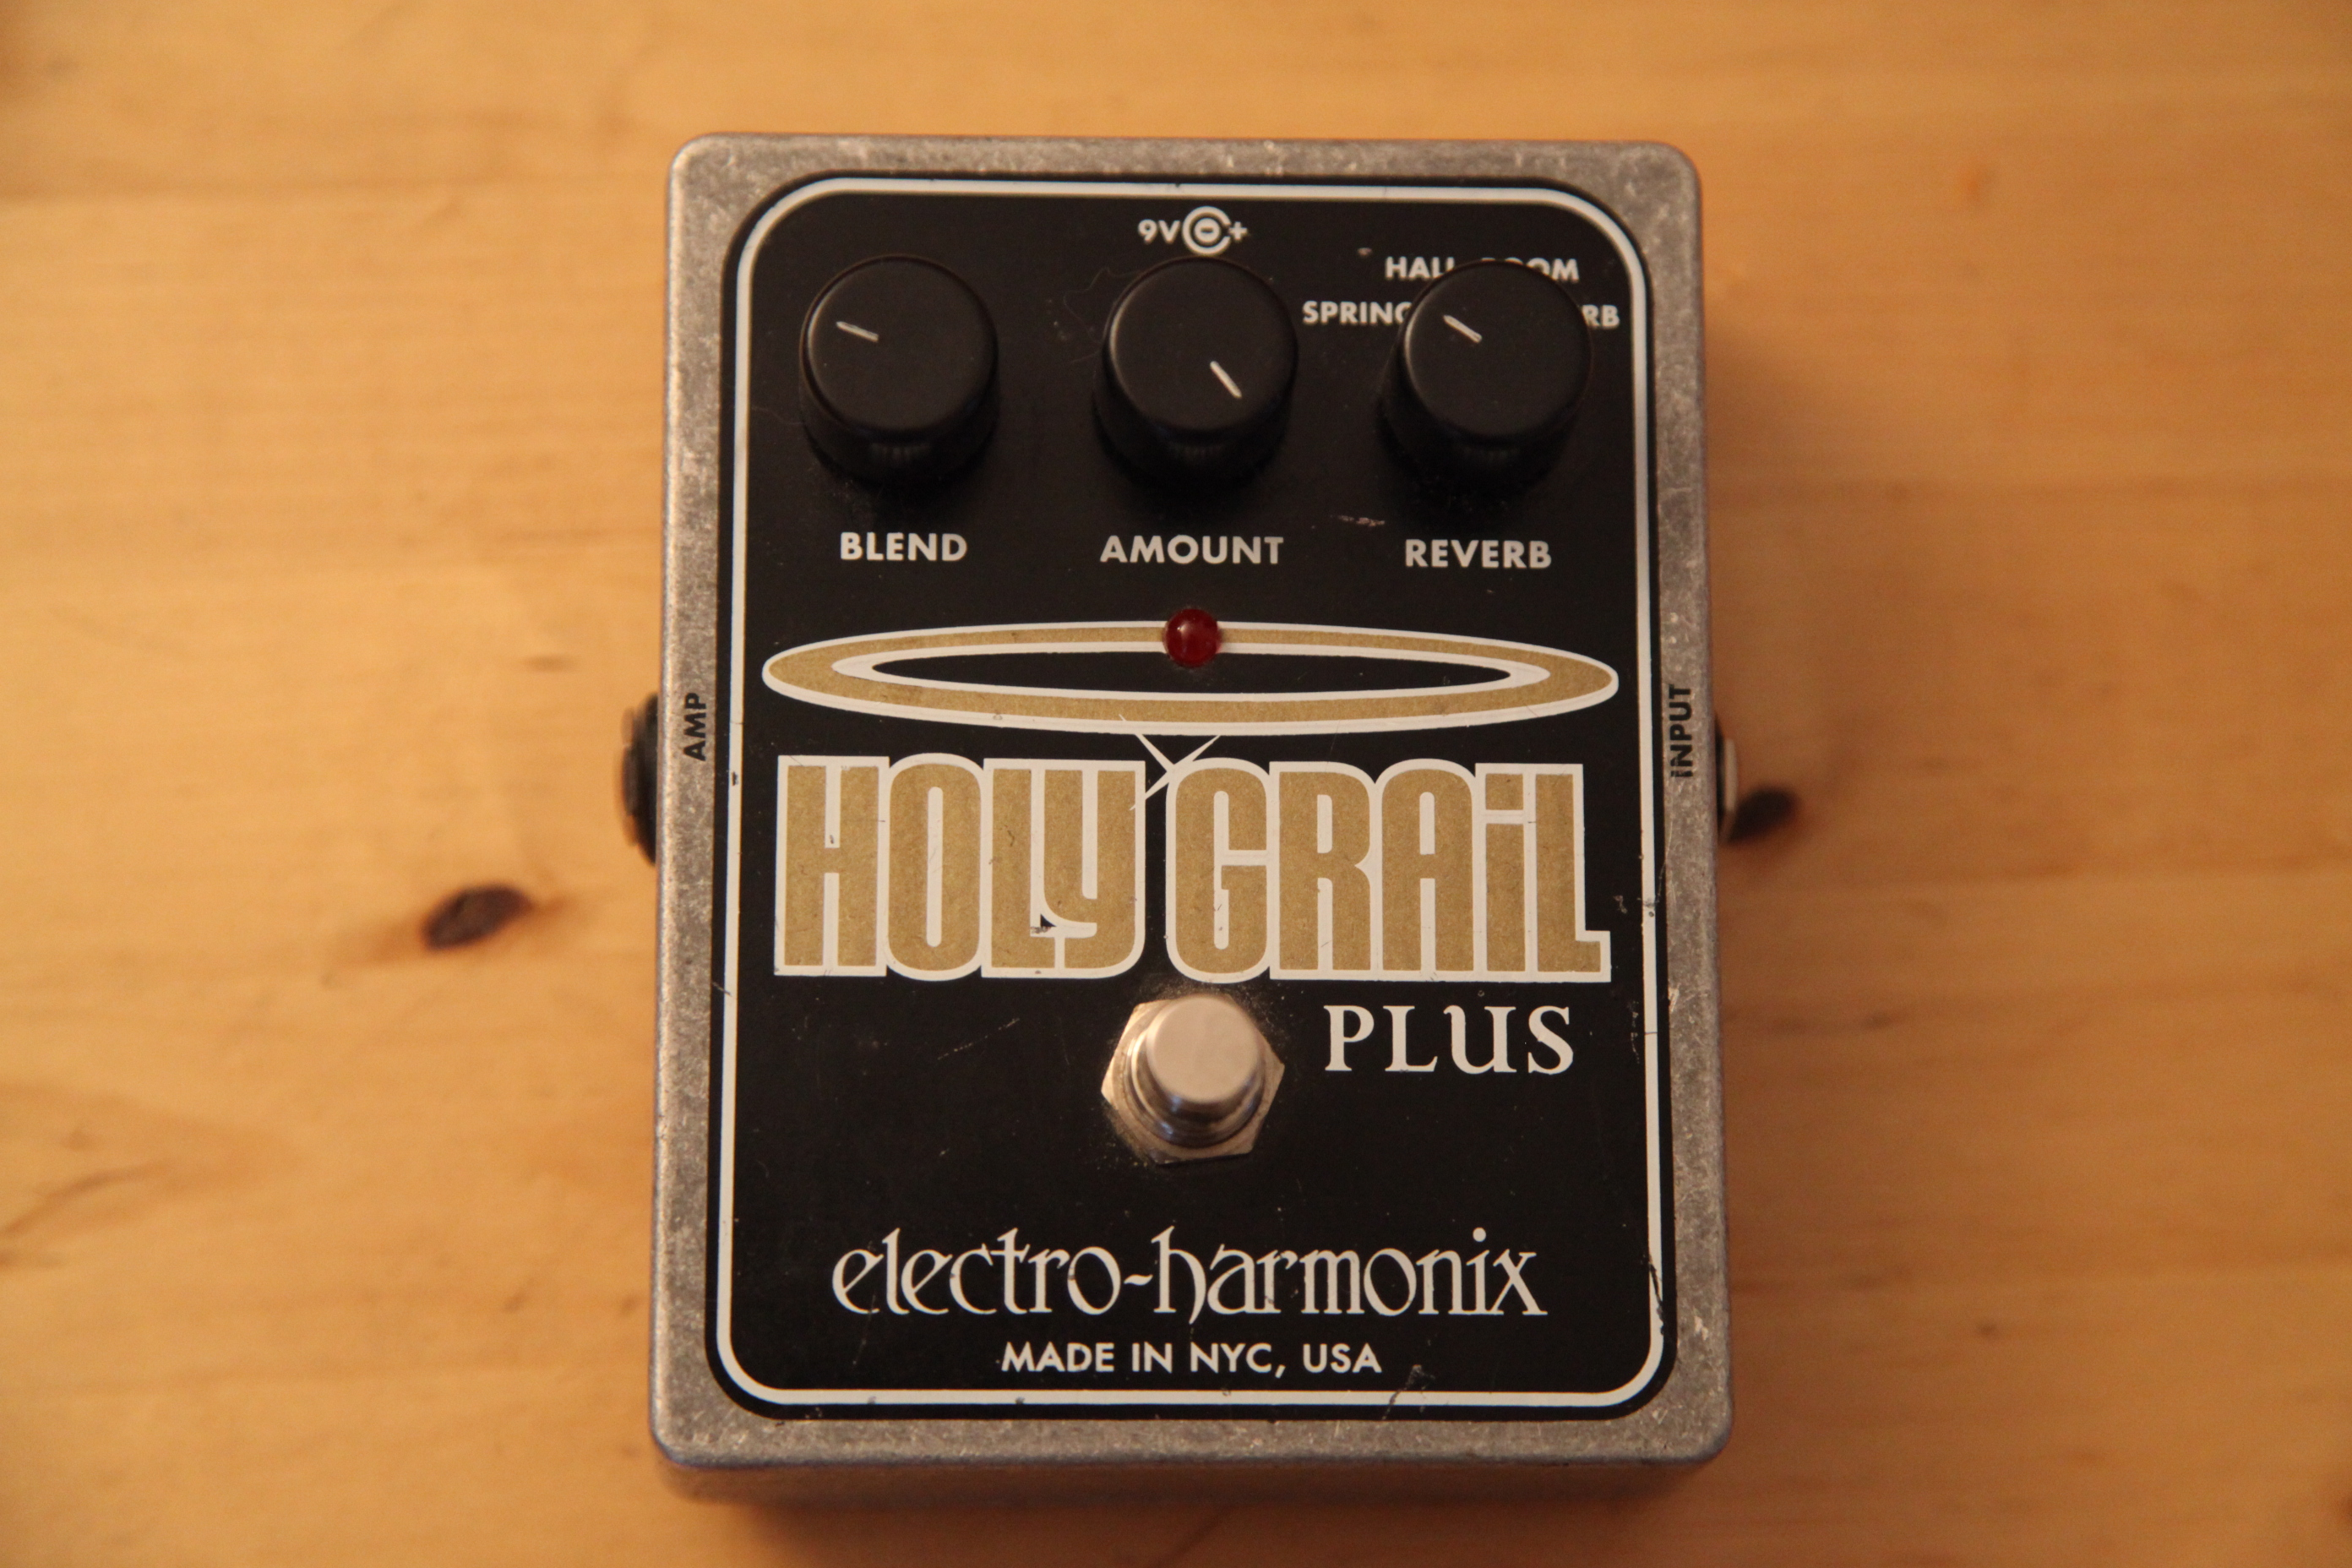 Holy Grail Plus : photo electro harmonix holy grail plus electro harmonix holy grail 602534 audiofanzine ~ Vivirlamusica.com Haus und Dekorationen